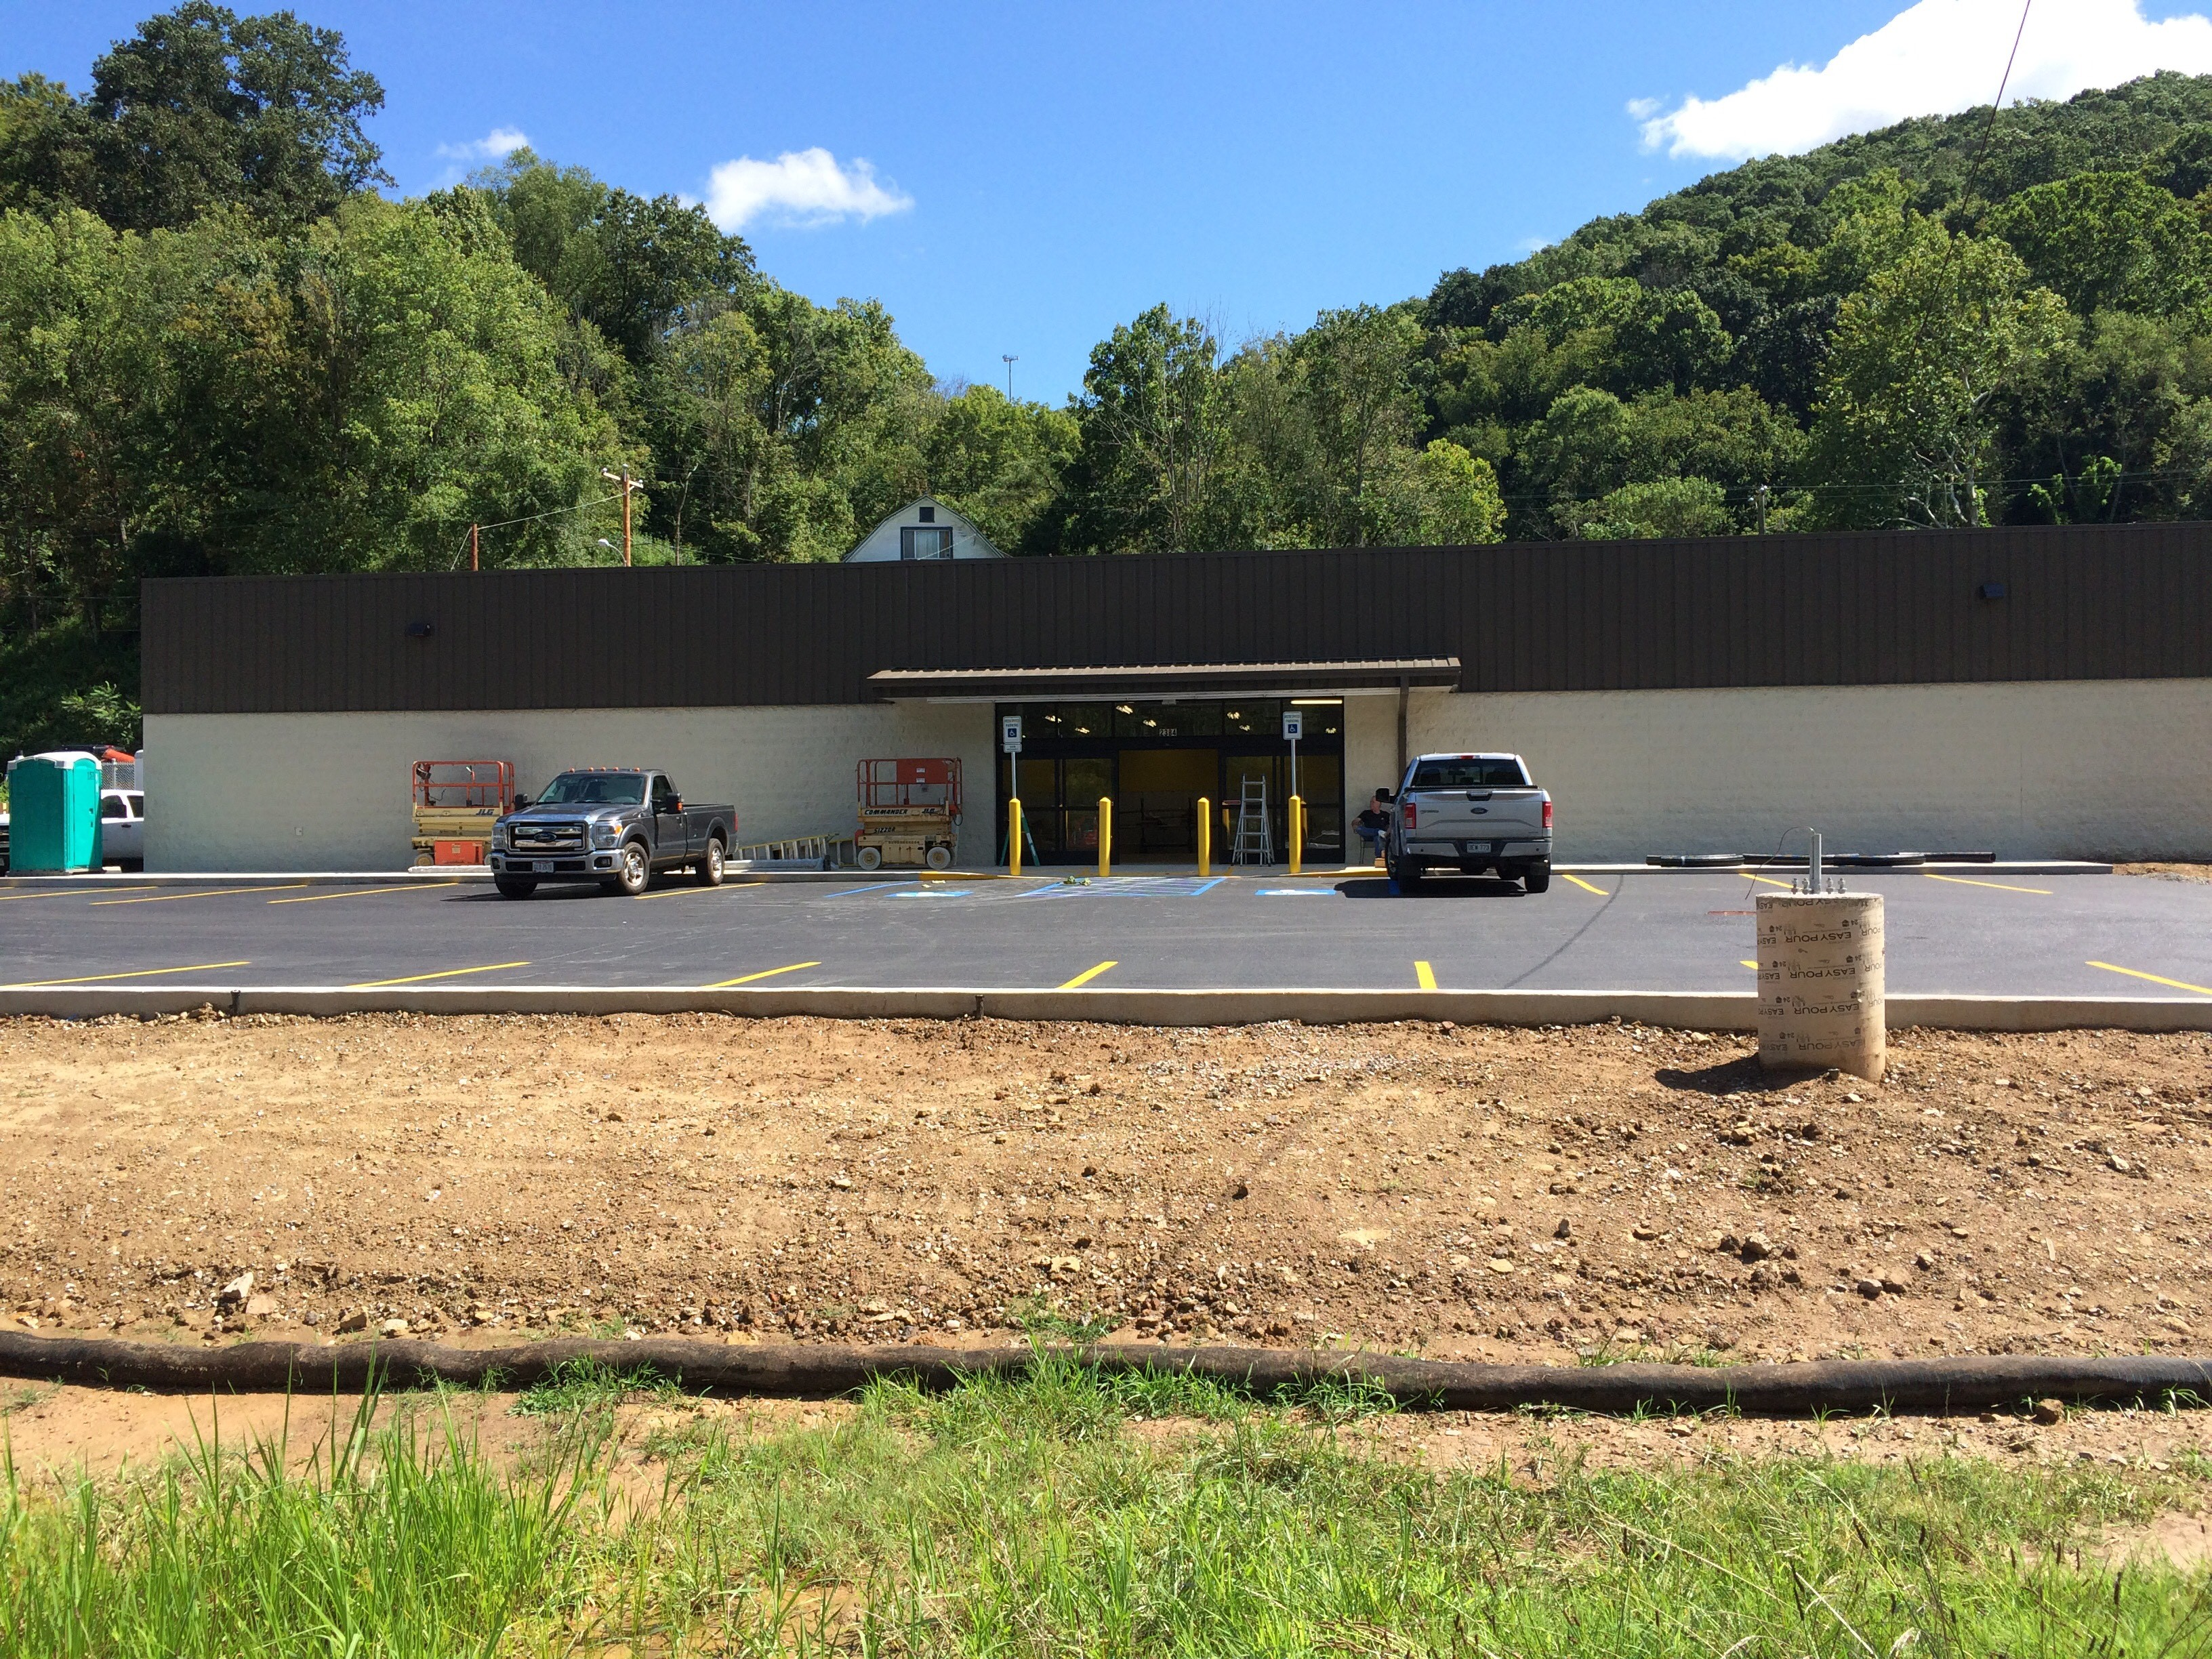 outside 1, dollar general, charleston wv,, shopping, supermarket, retail, commercial, commercial construction